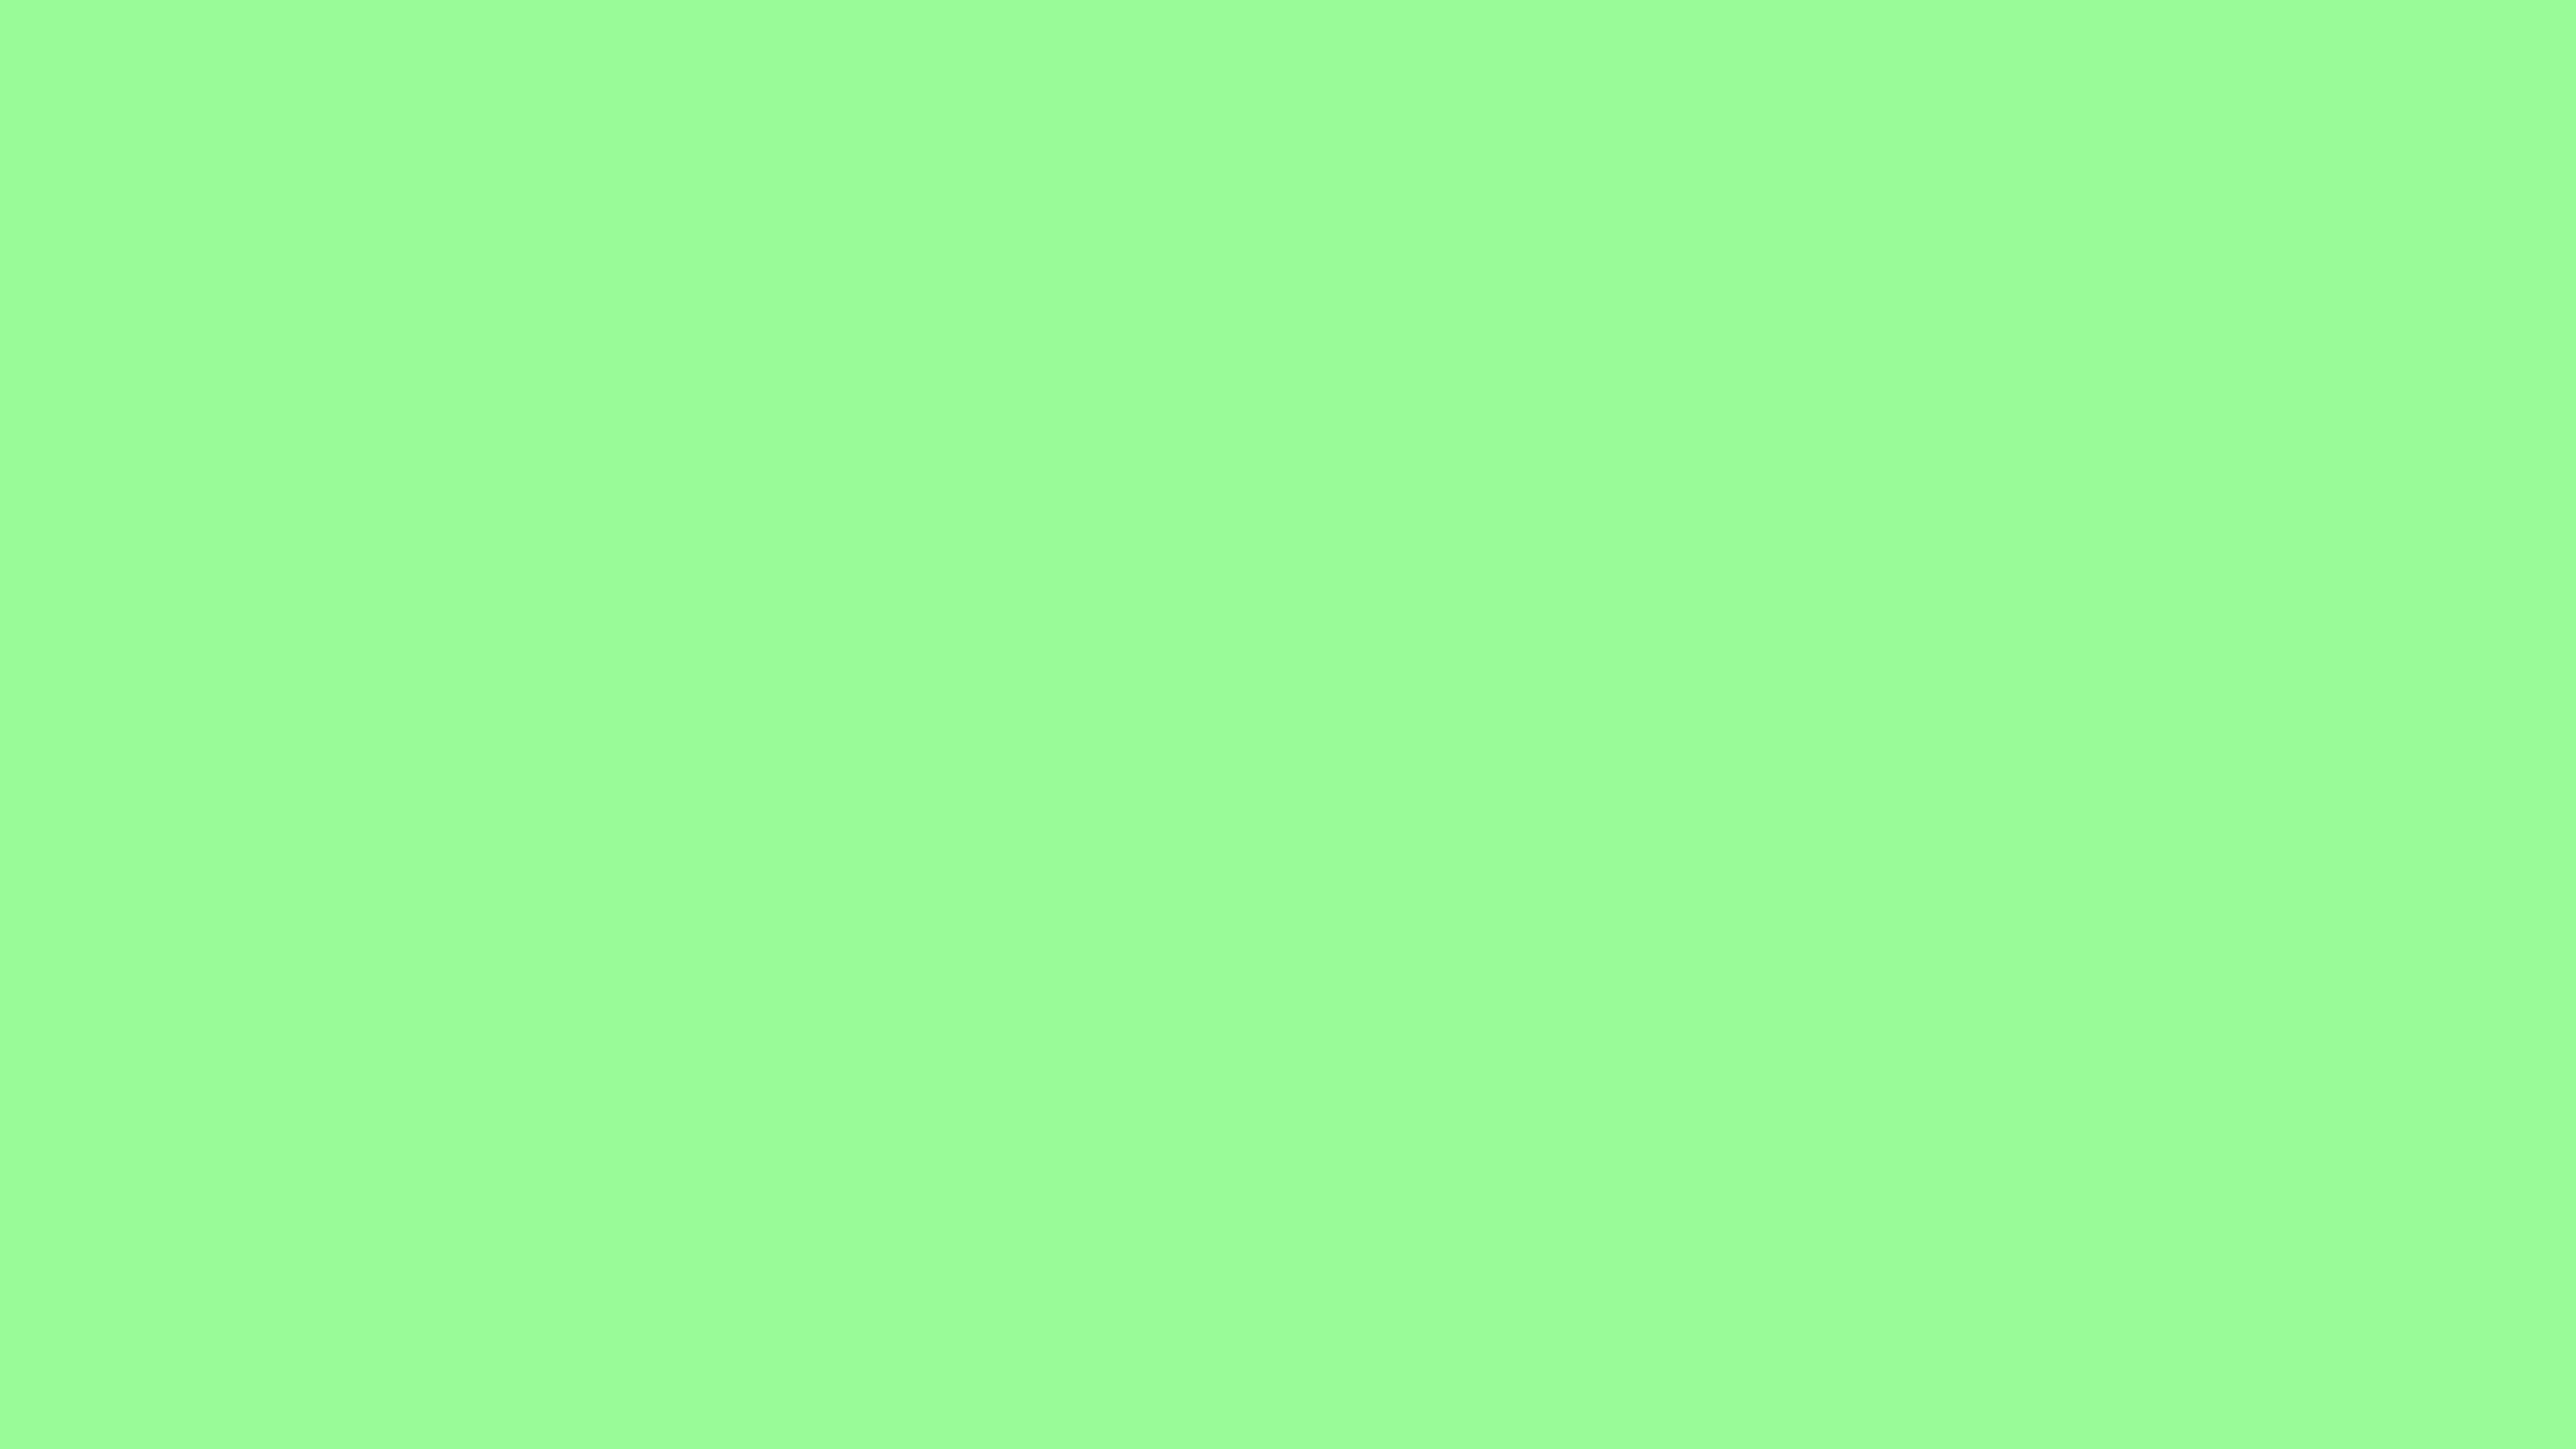 4096x2304 Pale Green Solid Color Background